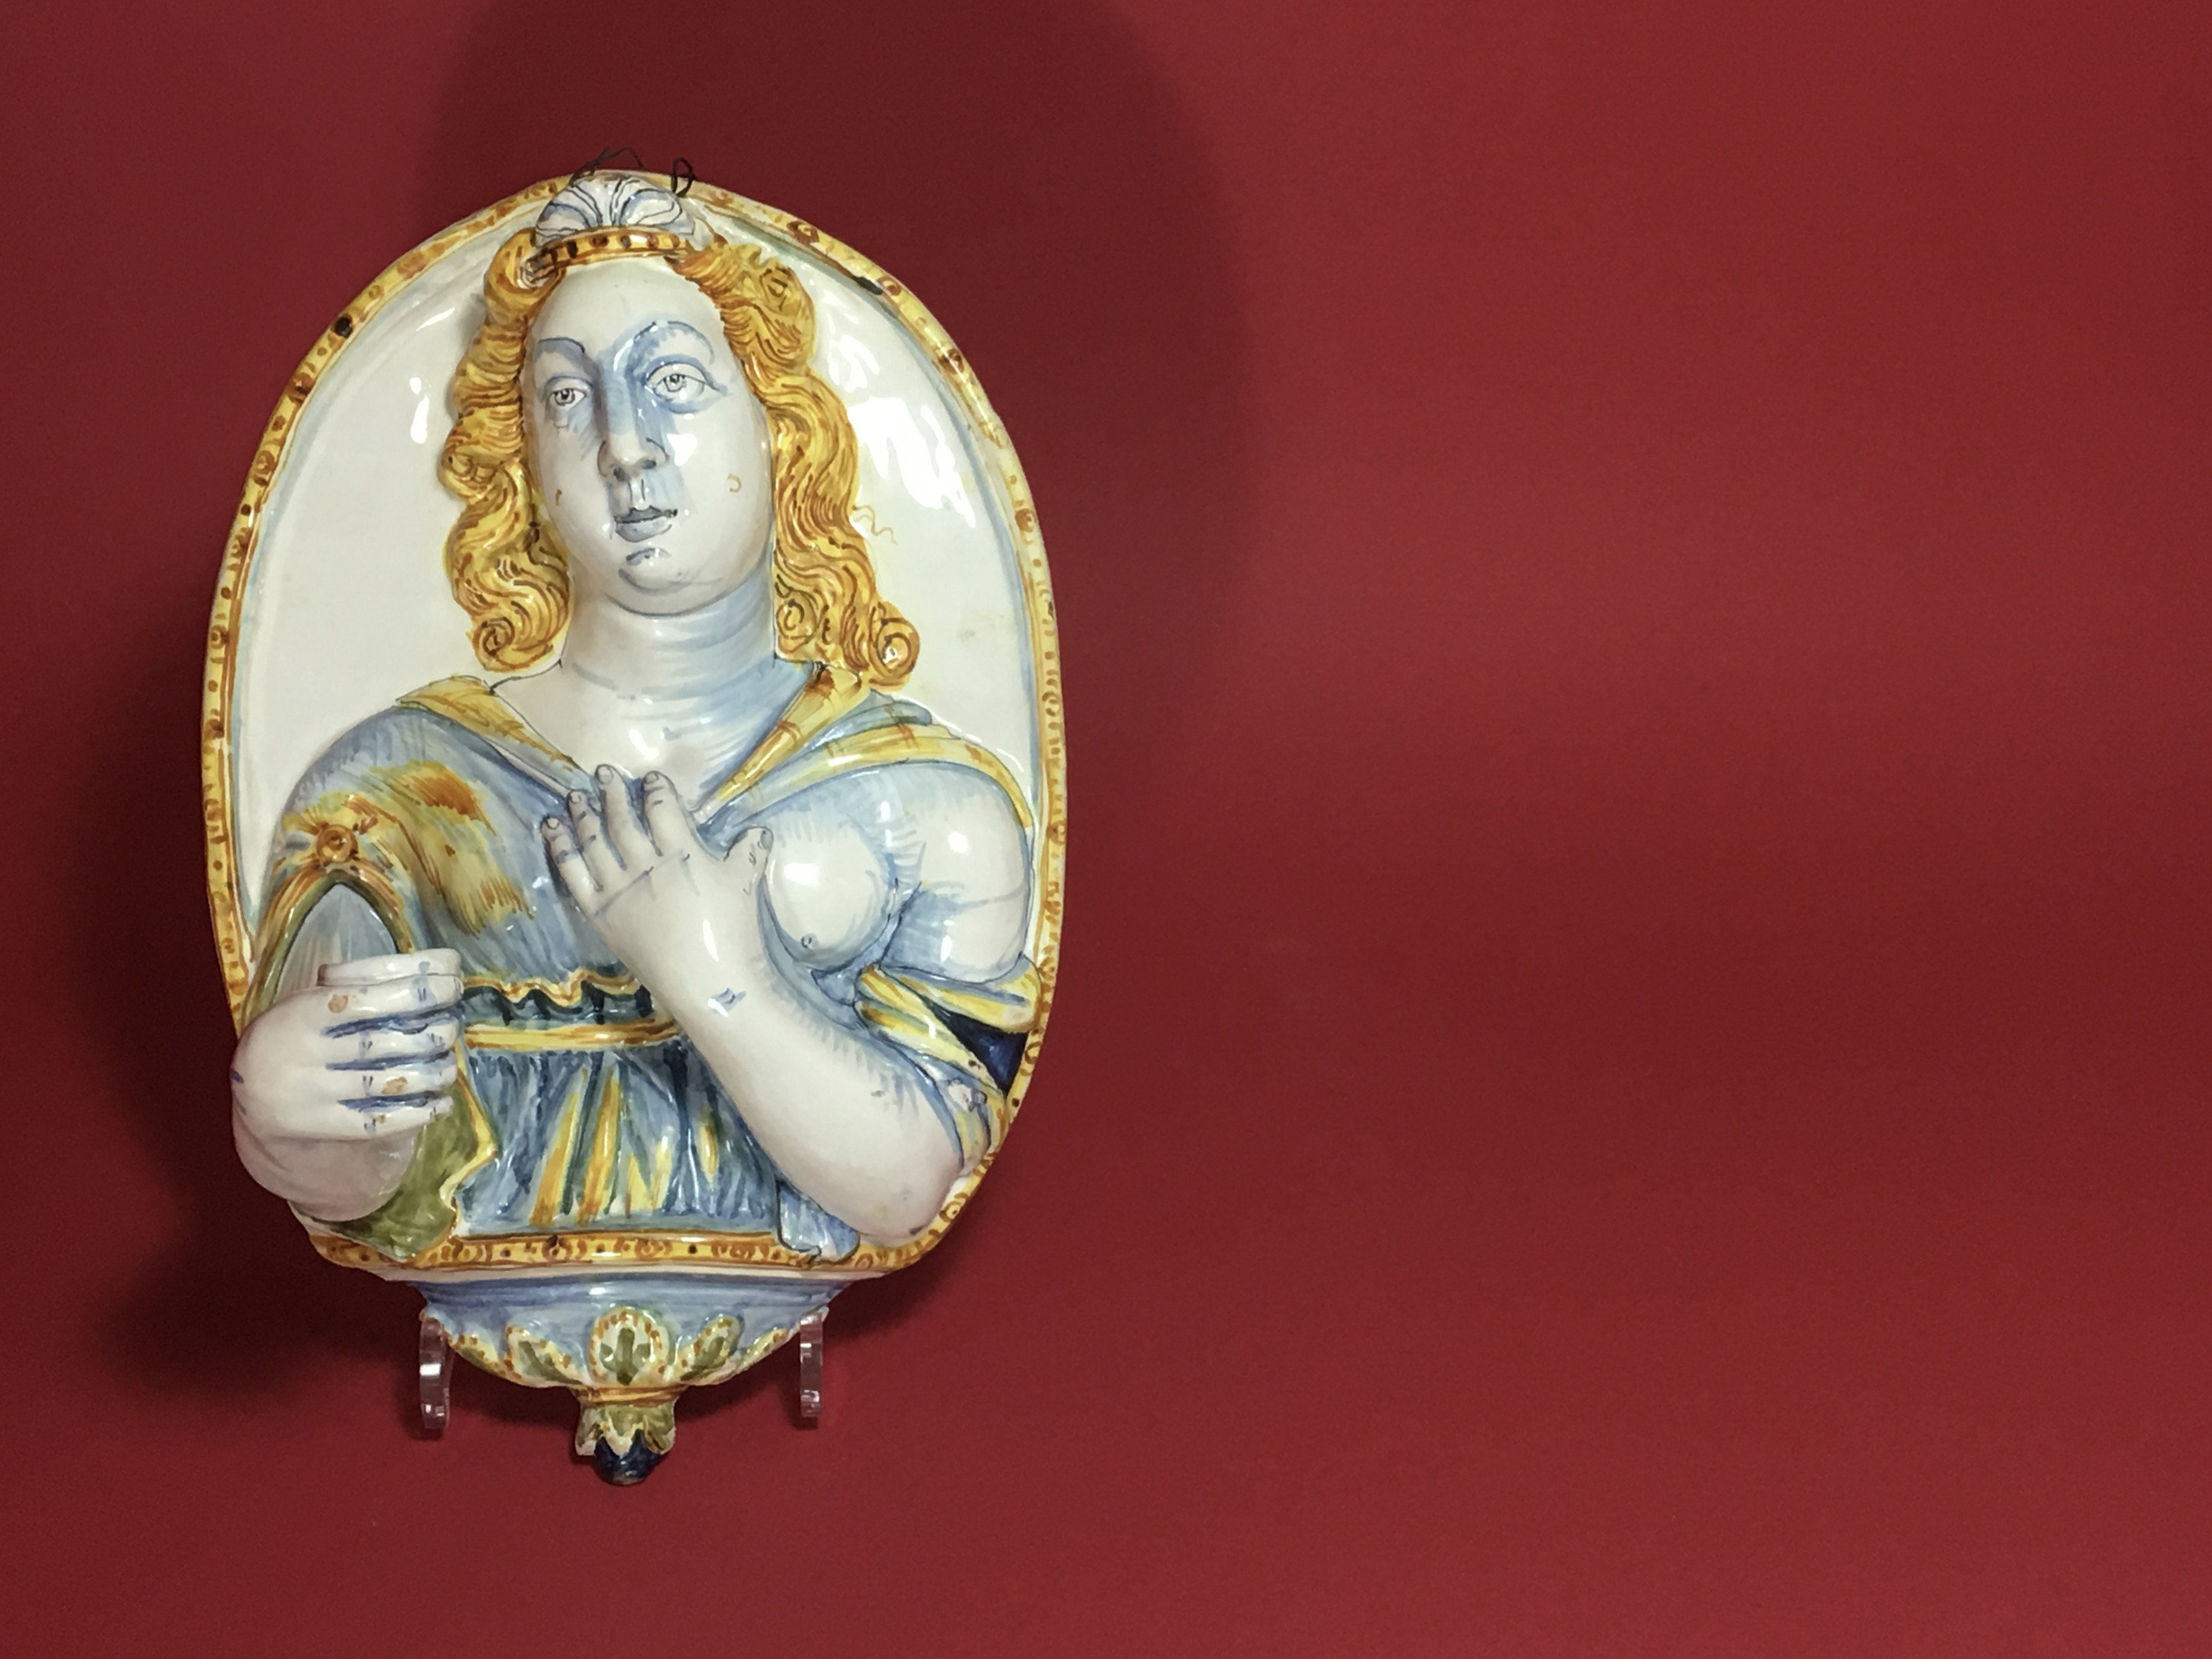 NEVERS - OVAL-SHAPED WALL PLATE FORMING AN ARM OF LIGHT - SEVENTEENTH CENTURY